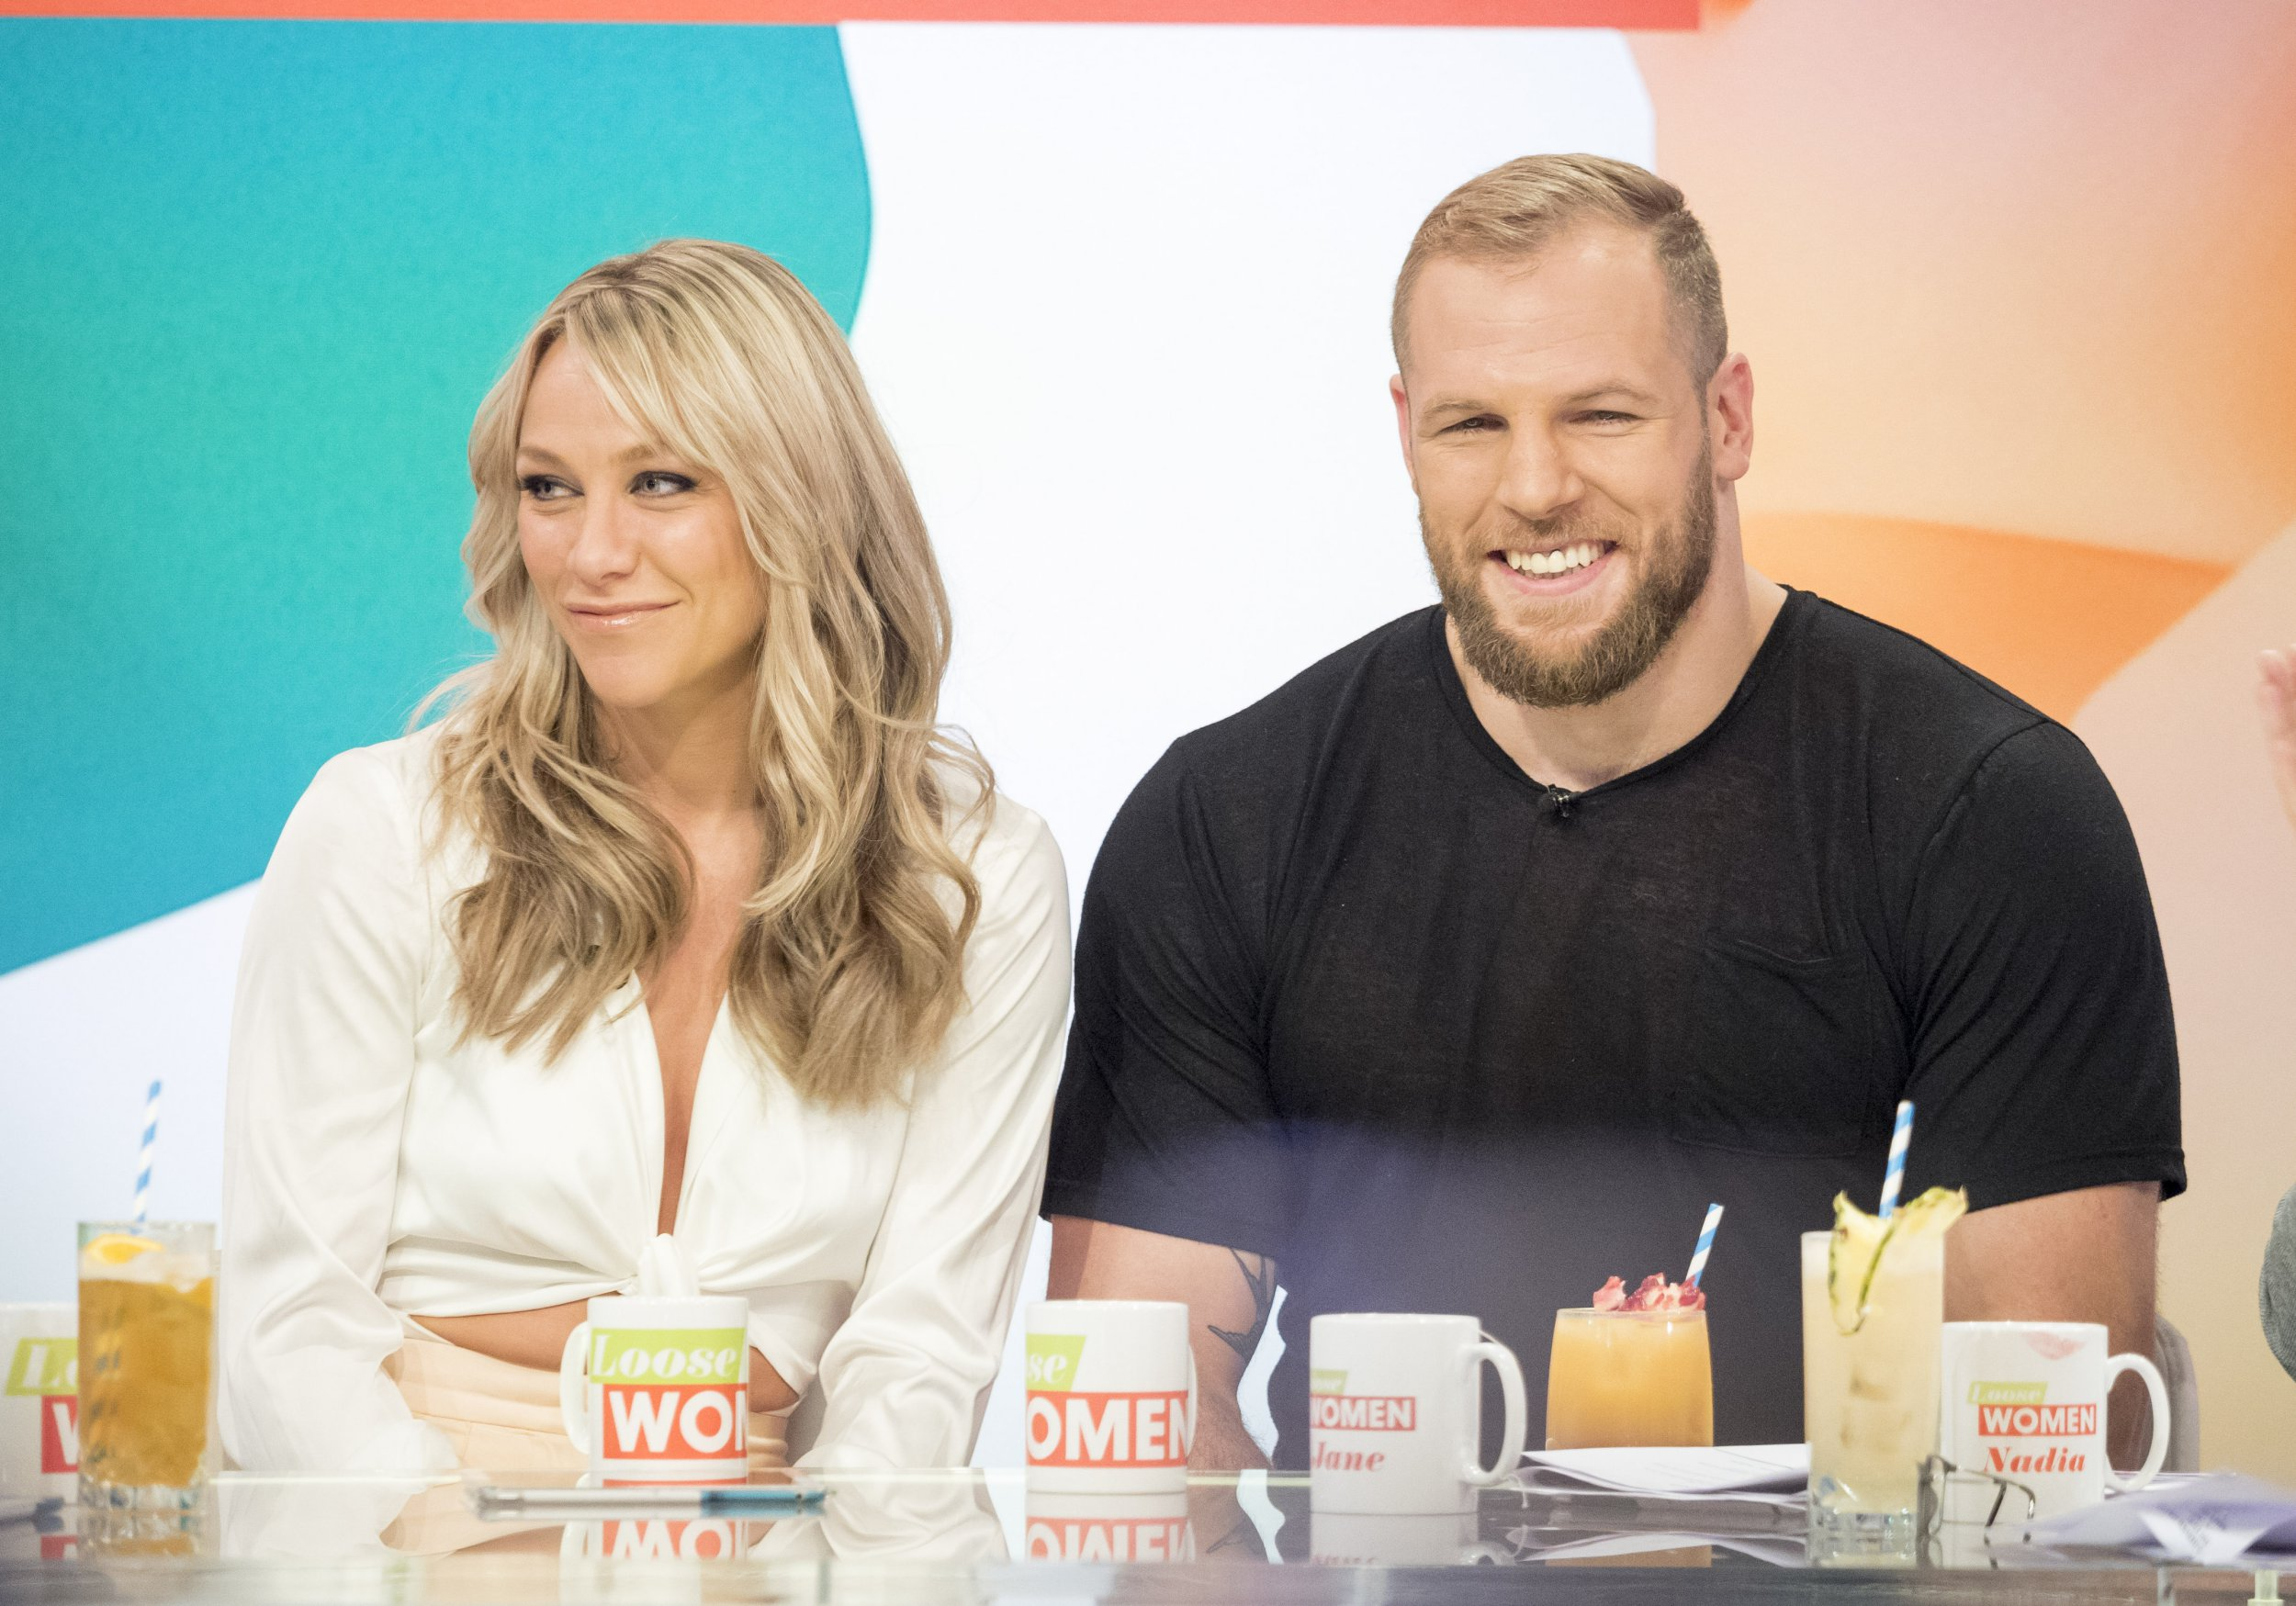 EDITORIAL USE ONLY. NO MERCHANDISING Mandatory Credit: Photo by Ken McKay/ITV/REX/Shutterstock (9325227bi) Chloe Madeley and James Haskell 'Loose Women' TV show, London, UK - 18 Jan 2018 Chloe Madeley and James Haskell These two are the definition of a power couple! Chloe is the daughter of daytime TV royalty Richard and Judy, whose carved out a successful career in her own right as a fitness guru. And James is an elite athlete with an impressive international rugby career. Today the couple are joining the panel to discuss their new health and fitness books.